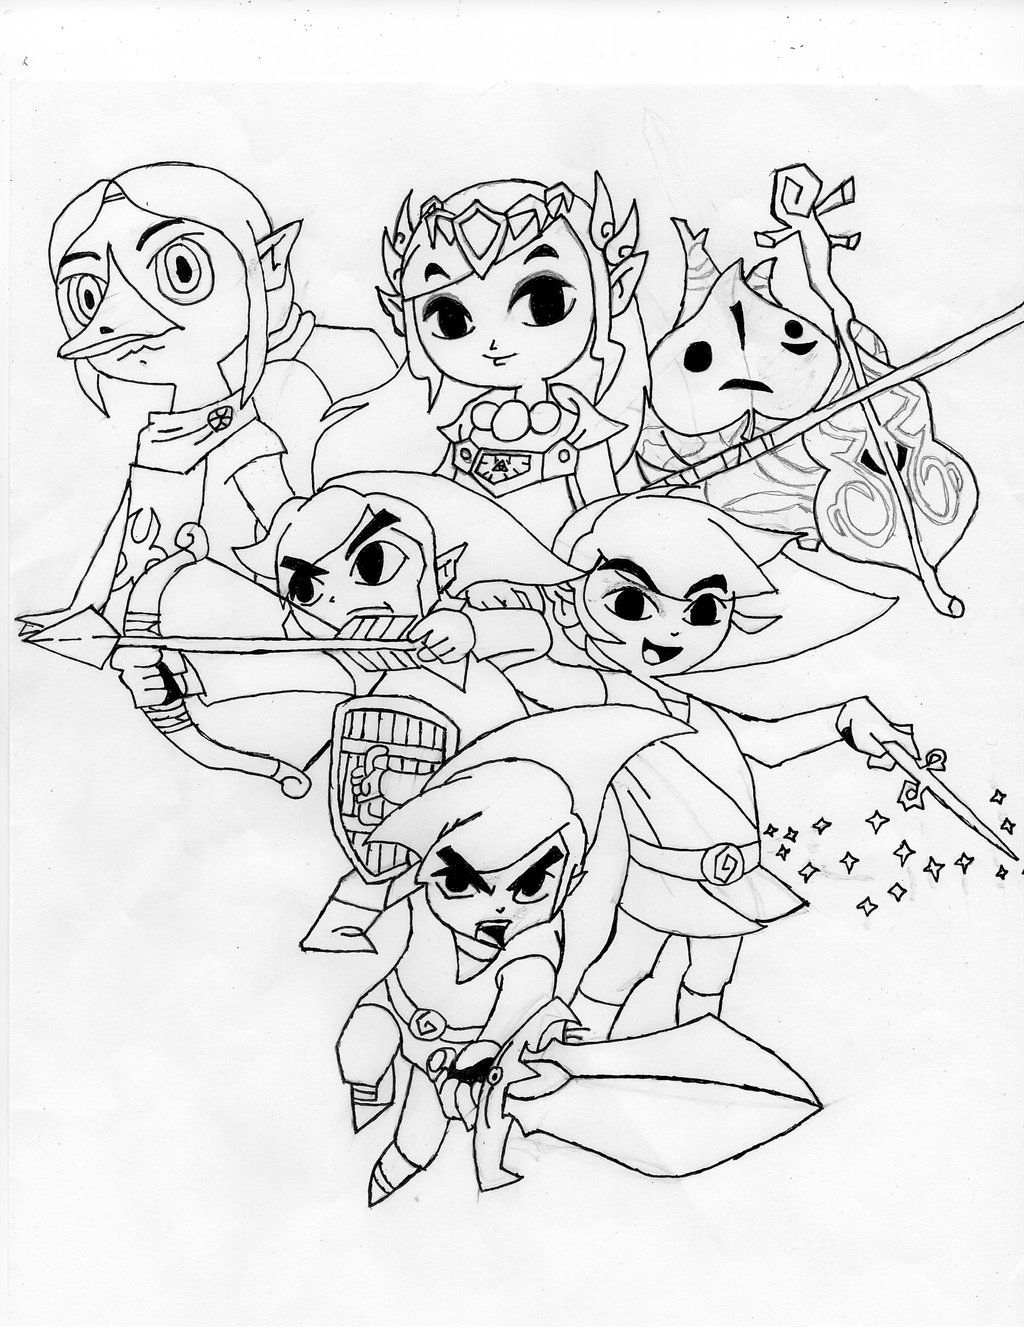 zelda link sailing Google Search Coloring pages